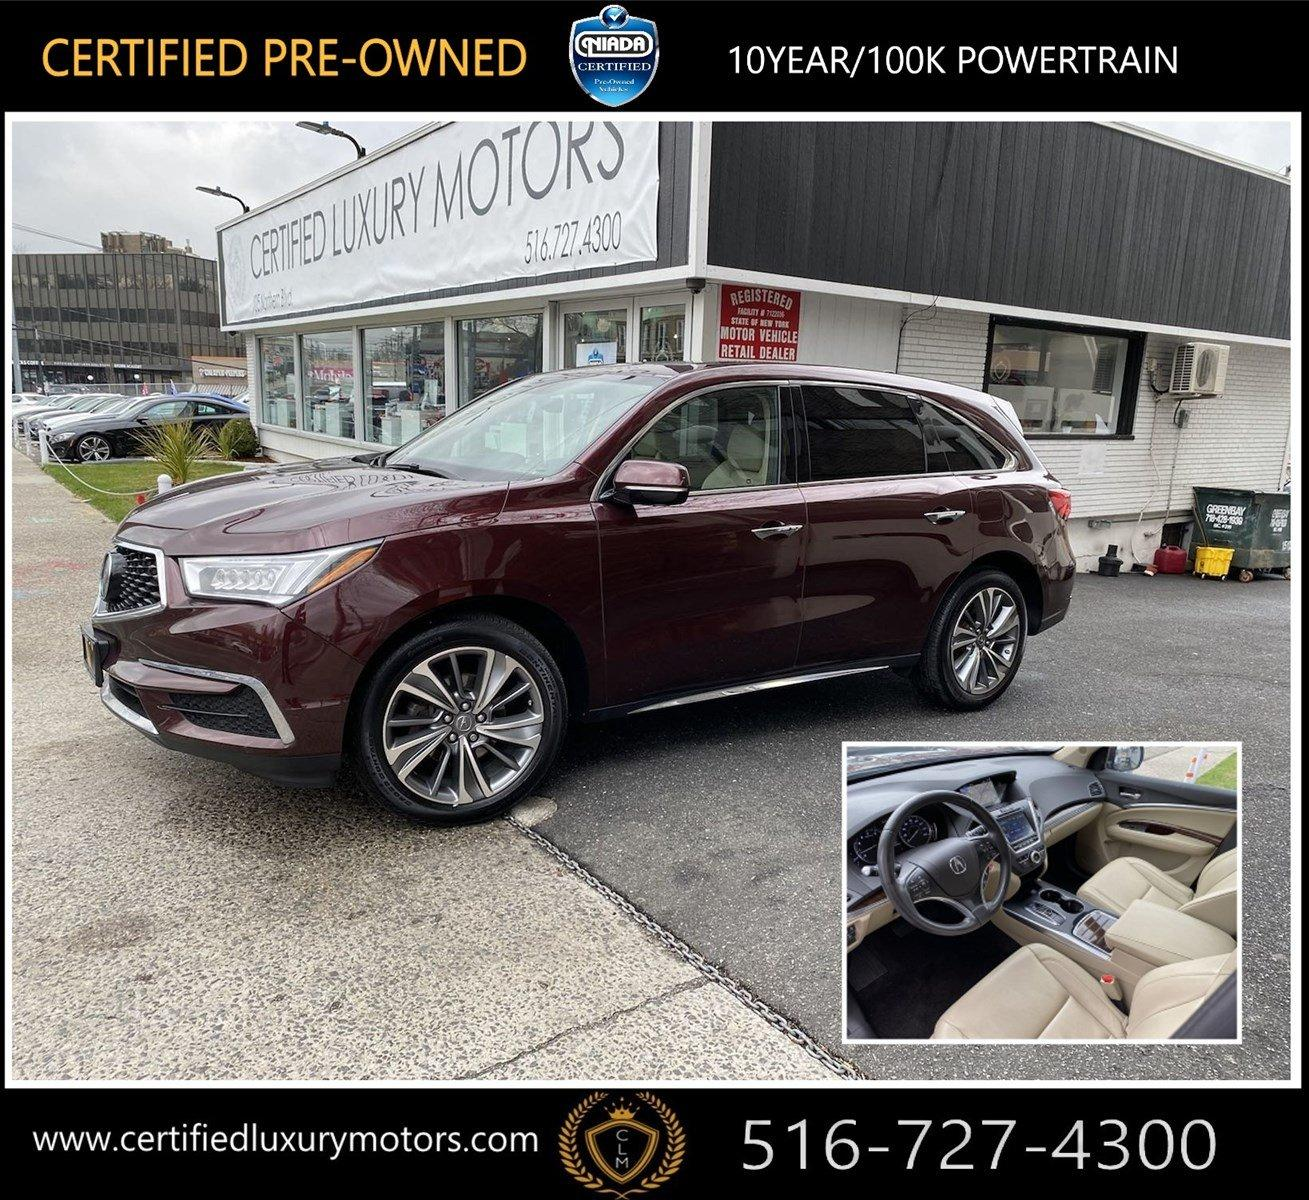 2017 Acura MDX W/Technology Pkg Stock # C0673 For Sale